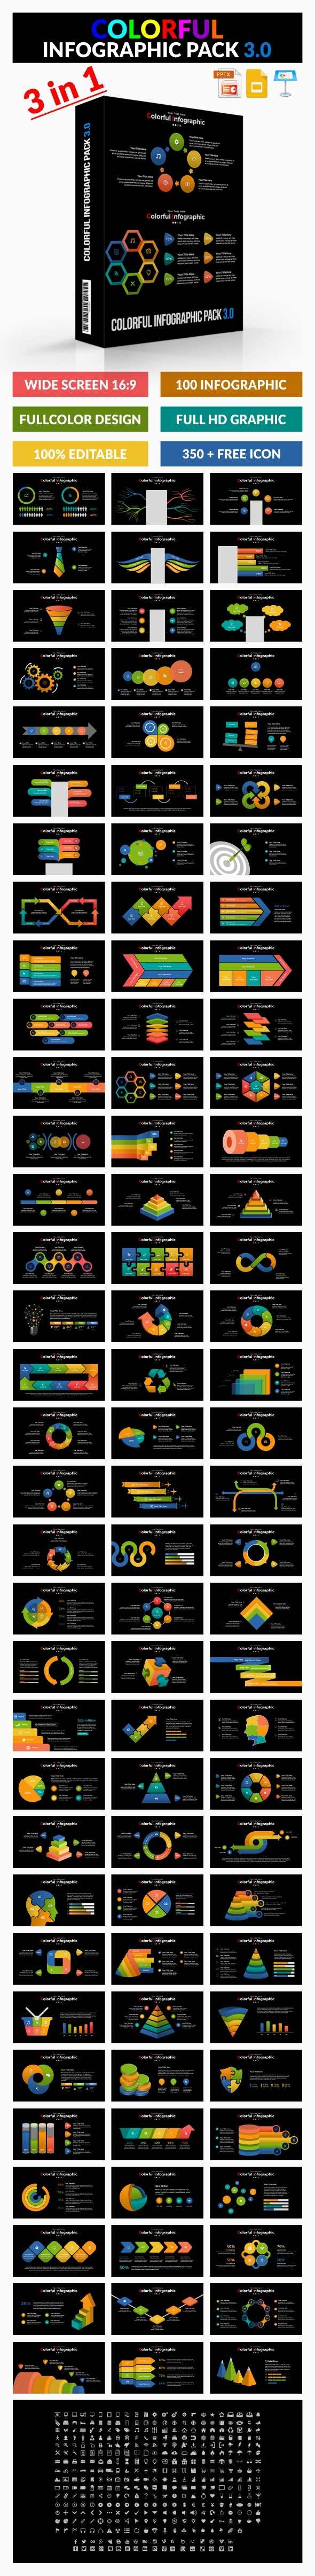 Bundle Colorful Infographic Pack 3.0 - PowerPoint Templates Presentation Templates